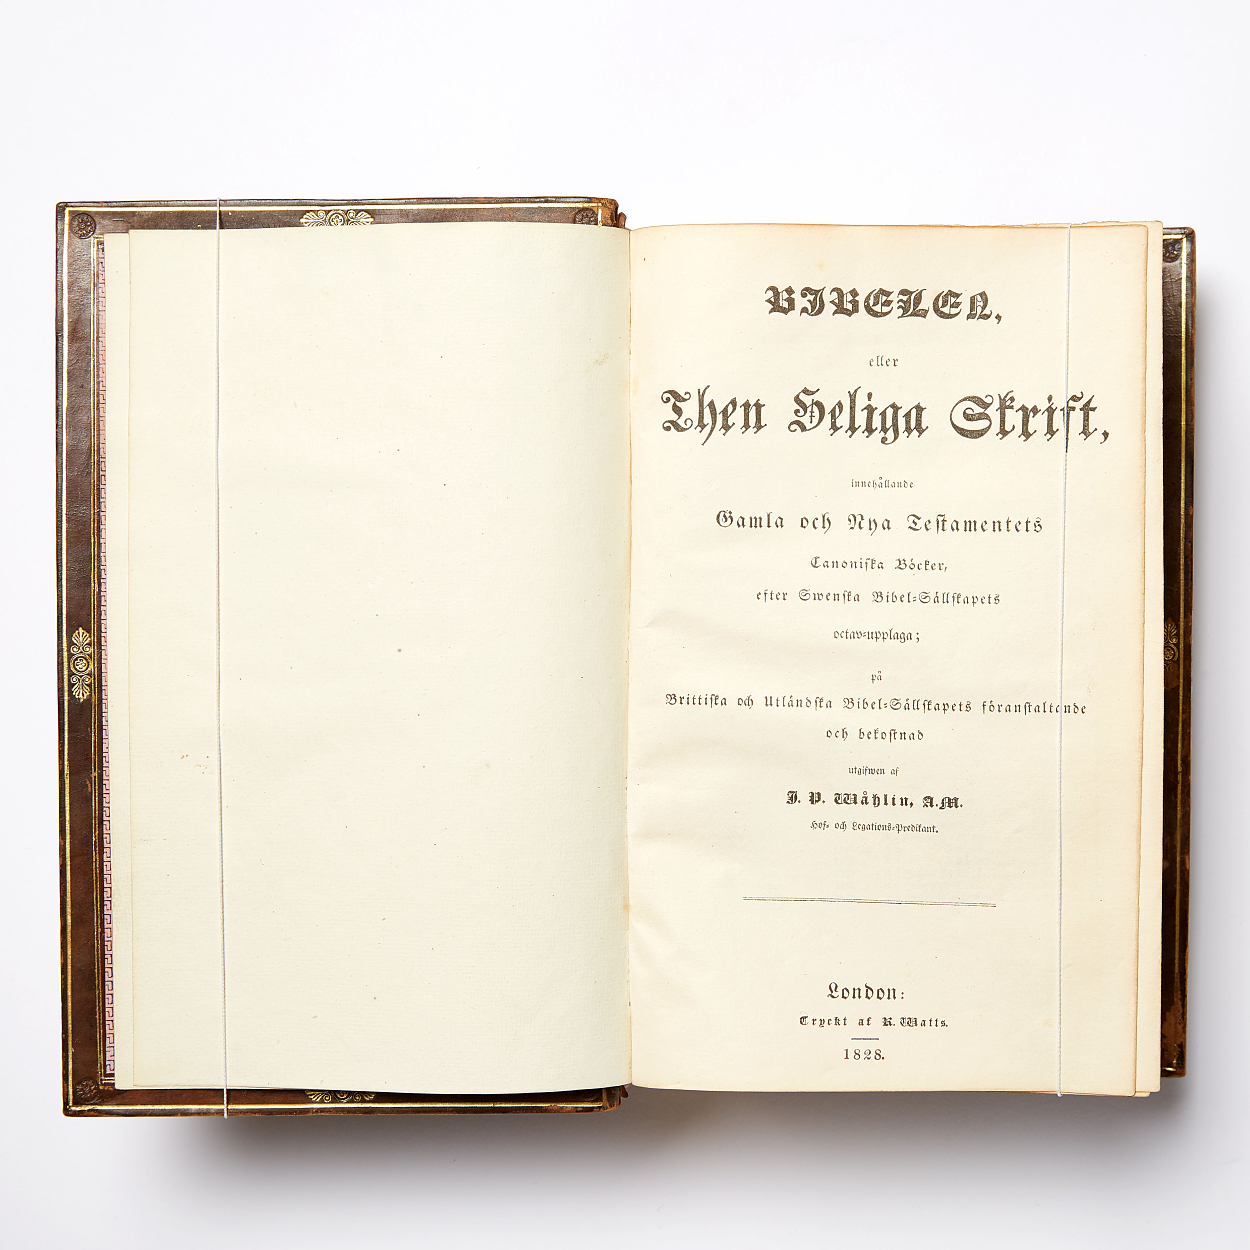 Bibel tryckt i London 1828 i samtida band